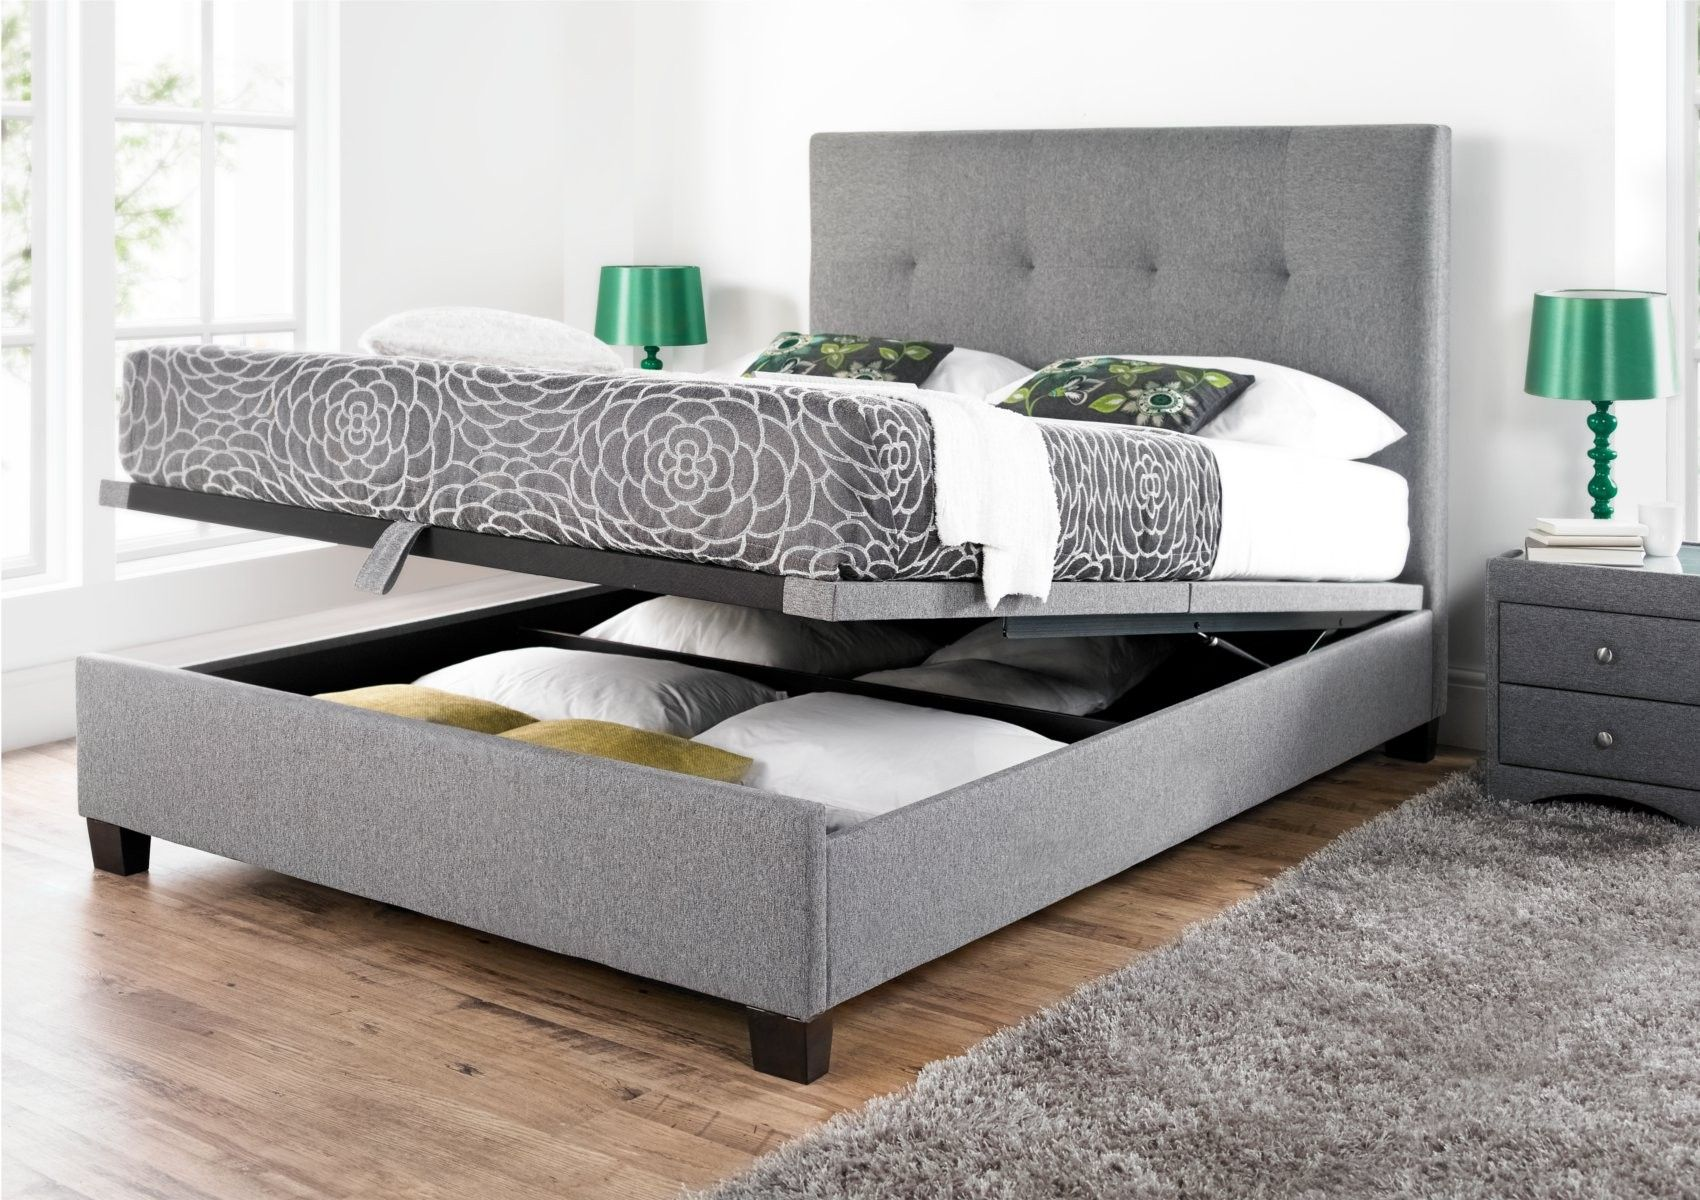 Exclusively available from Time 4 Sleep the Kaydian Walkworth ...